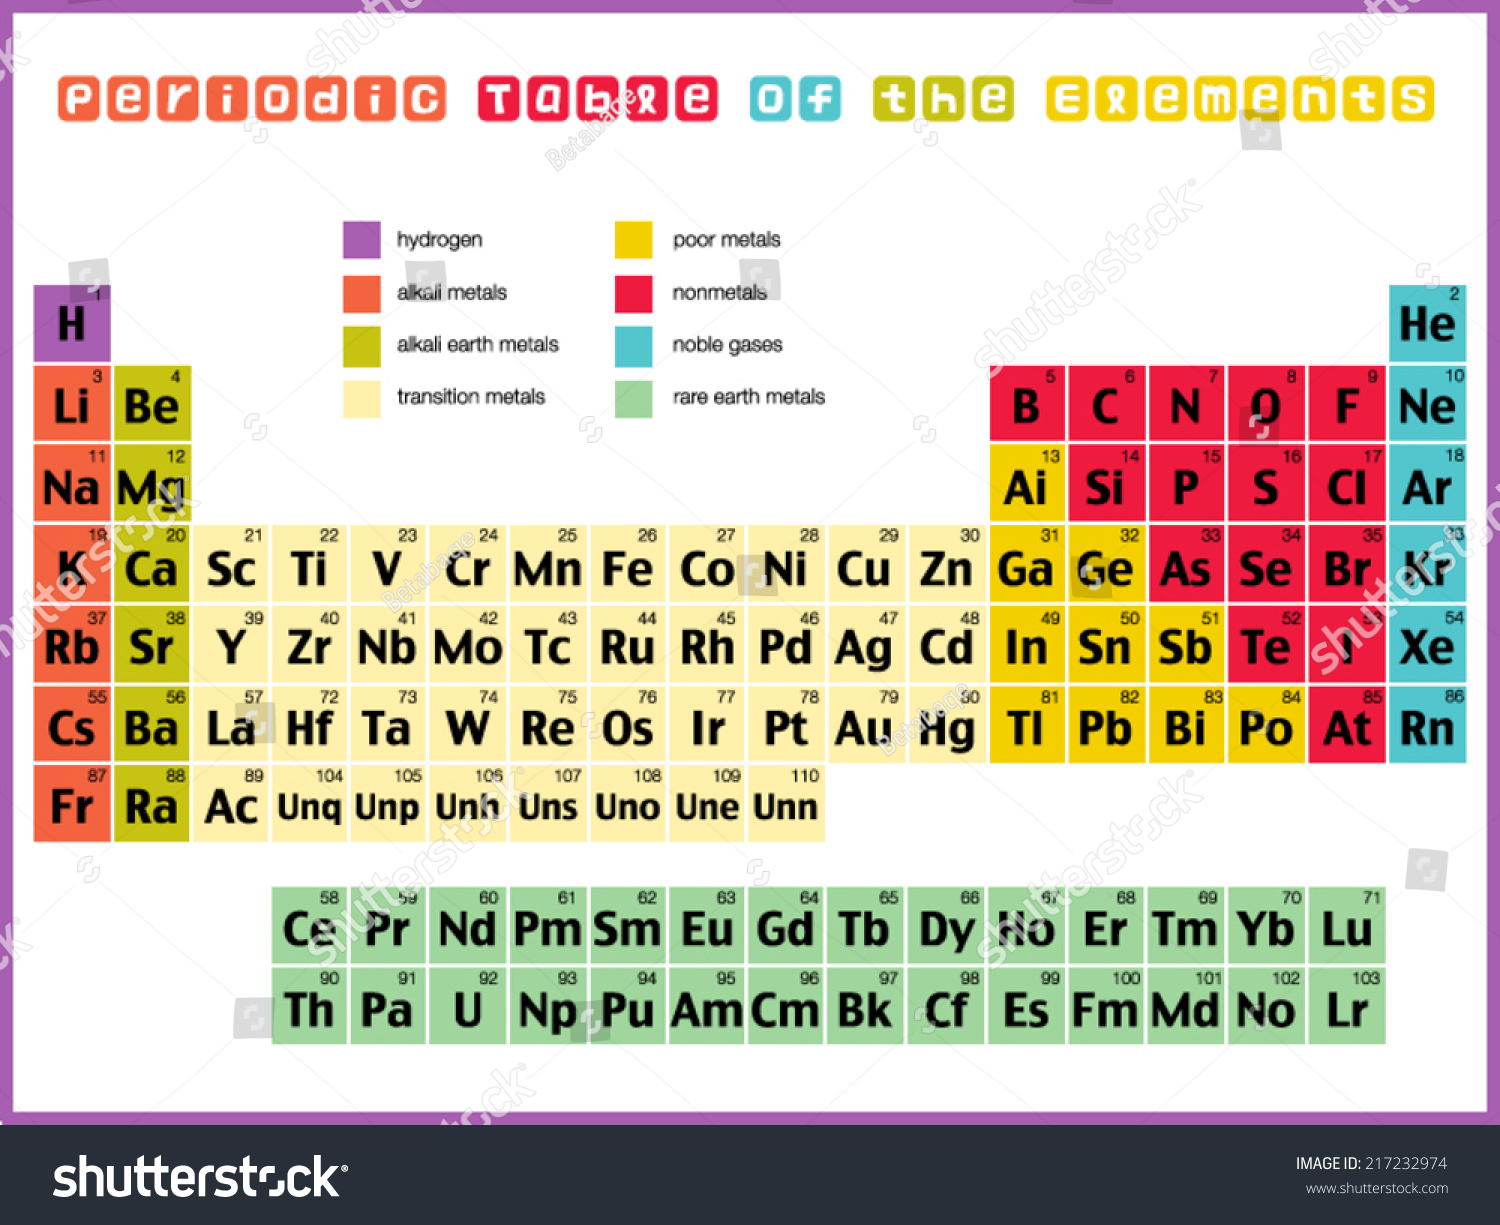 Periodic table elements stock vector 217232974 shutterstock periodic table of the elements gamestrikefo Choice Image